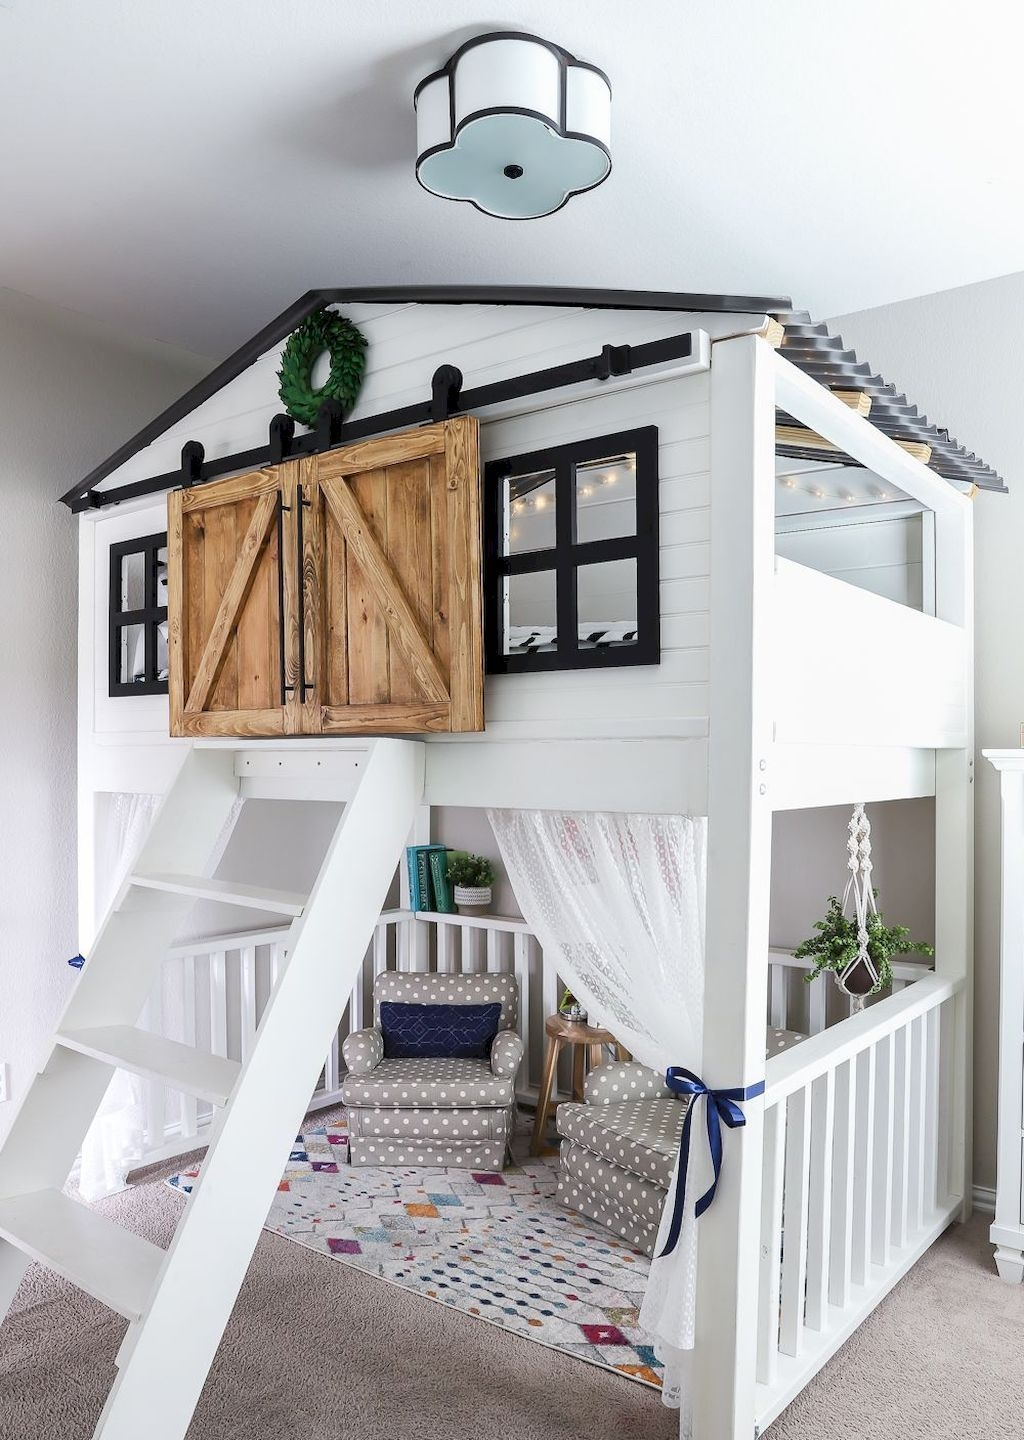 Adorable Bedroom Kids Design Ideas That Looks So Funny 28